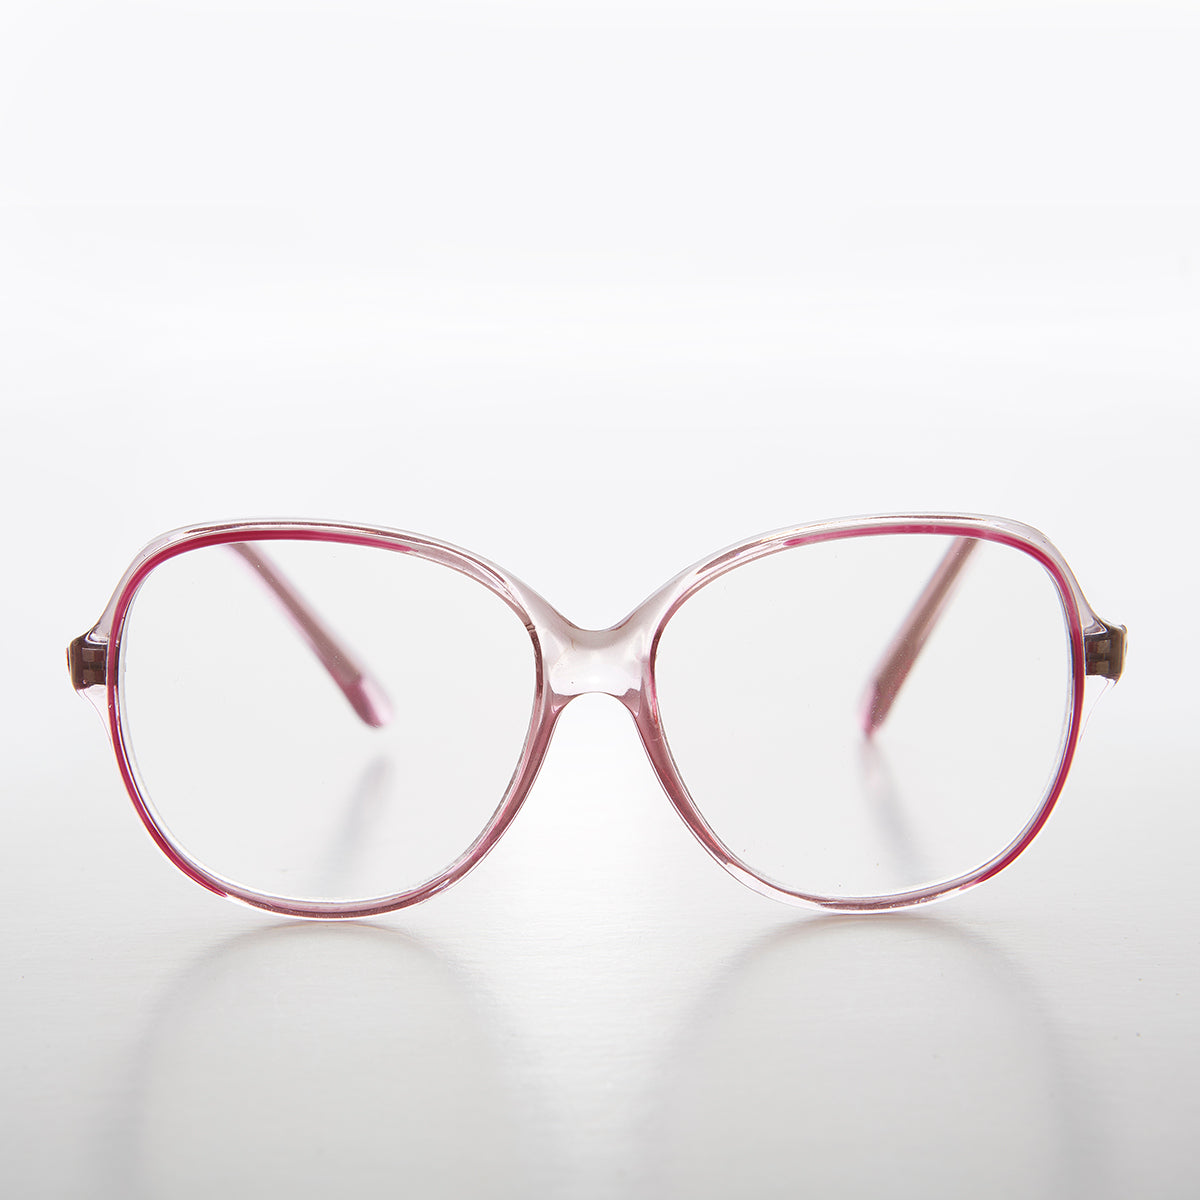 Big Clear Retro Reading Glasses with Red Color Accent